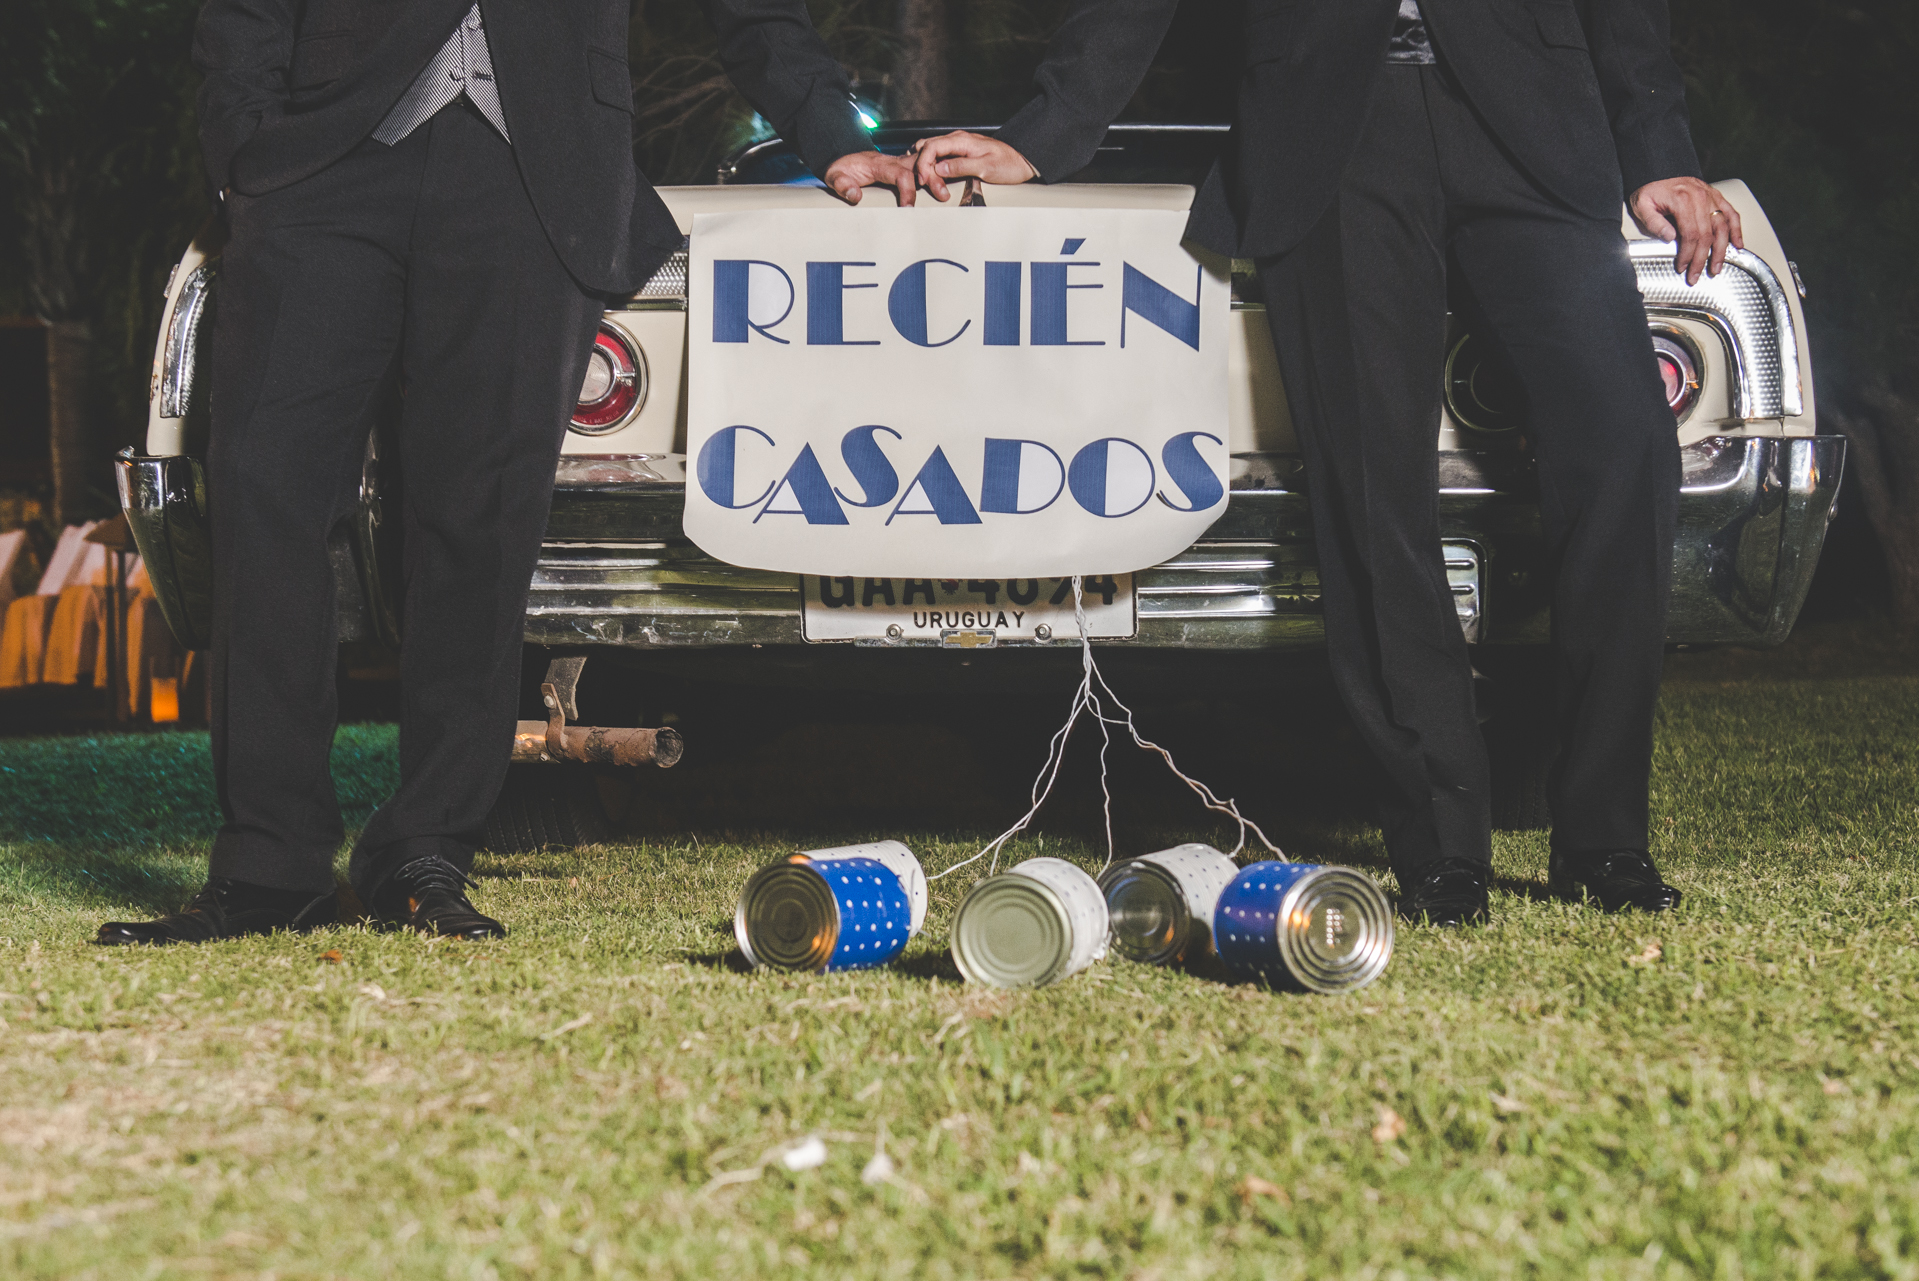 just married session photography gay wedding, sesion fotografica de recién casados boda gay